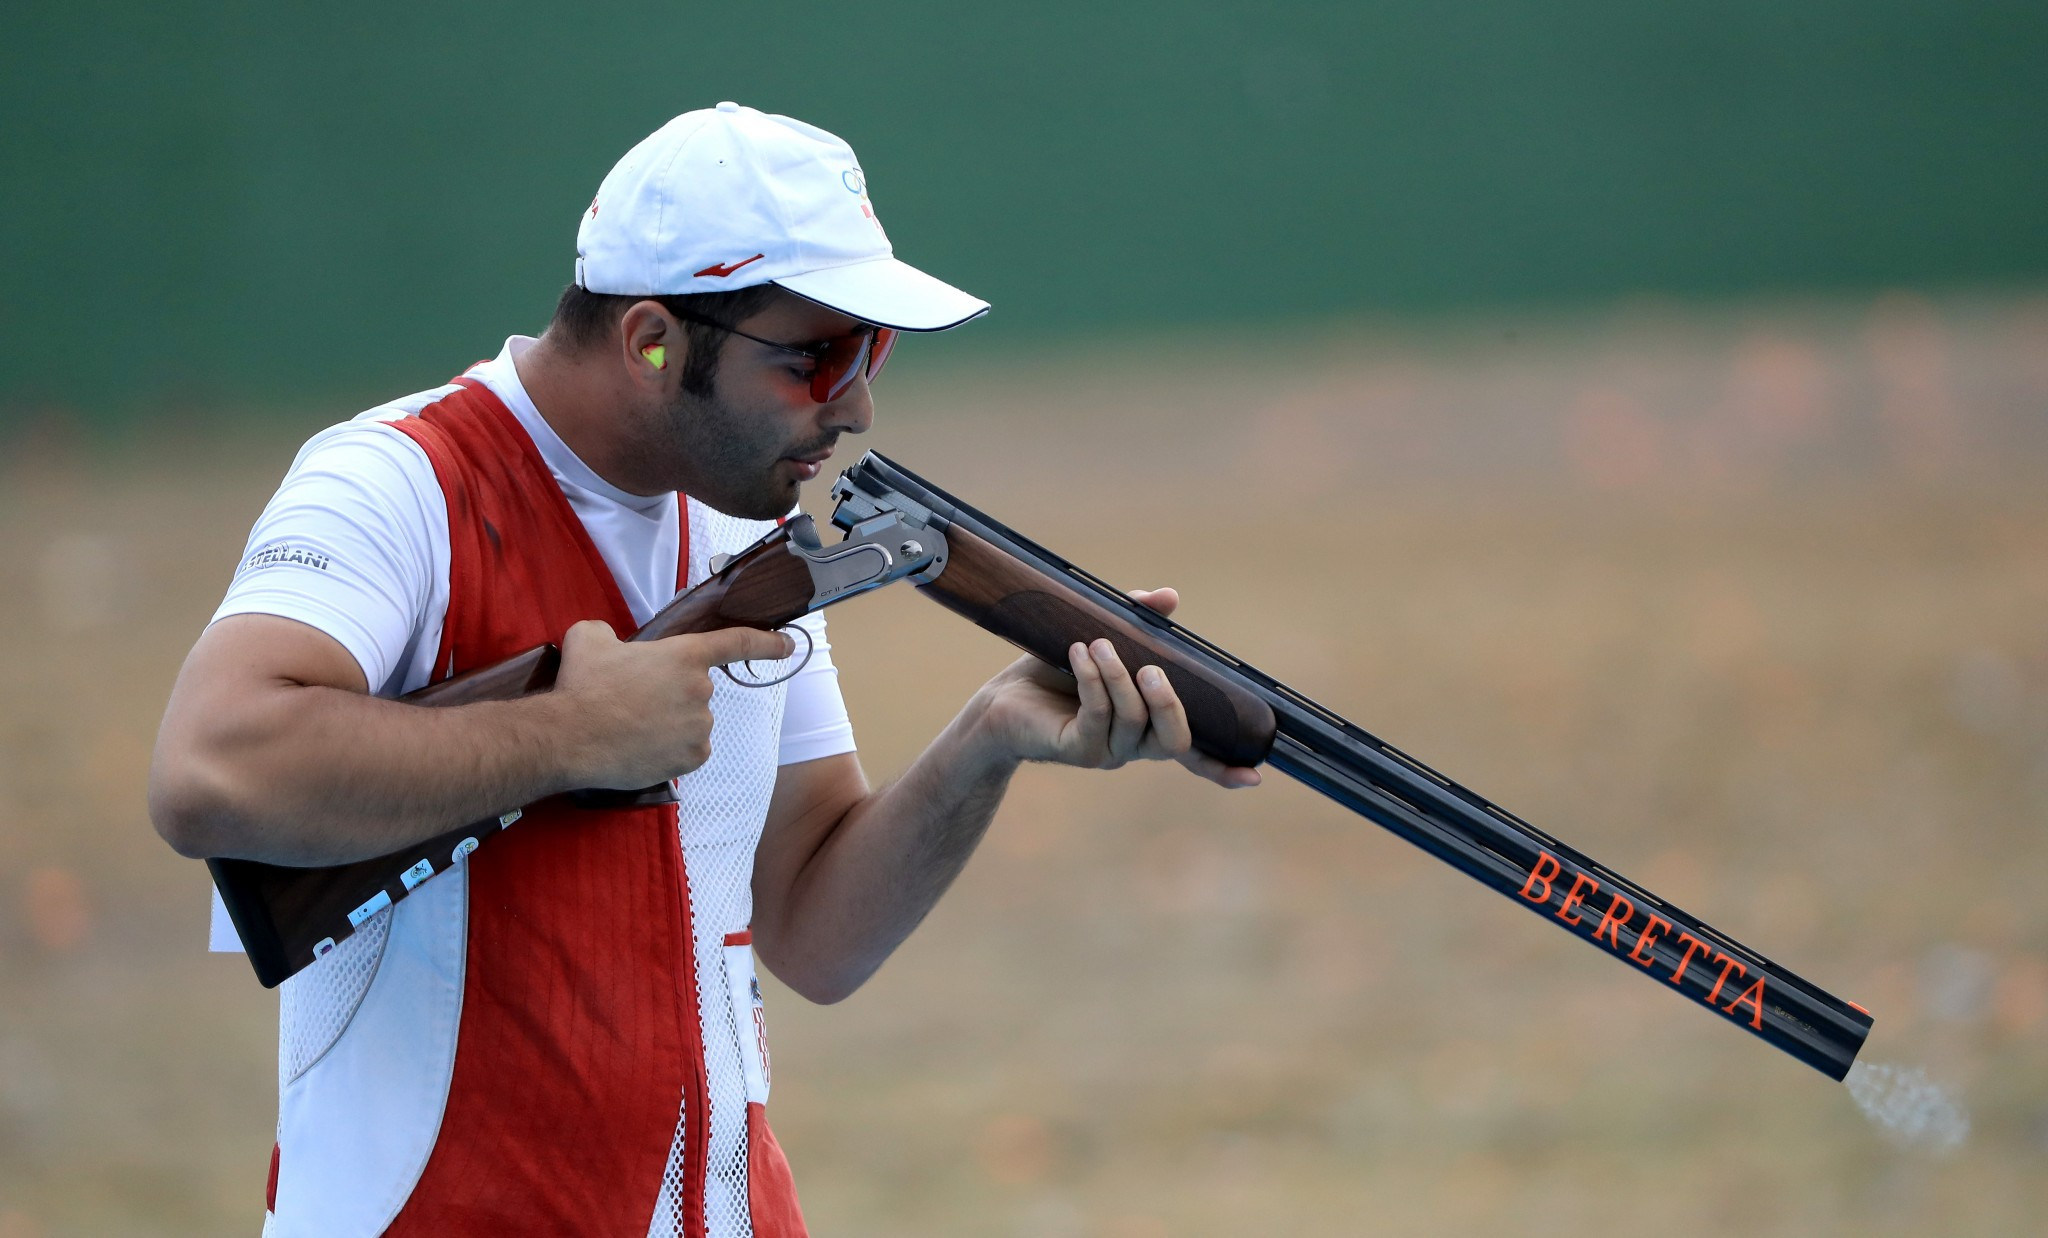 Josip Glasnovic is one of the two shotgun representatives ©Getty Images